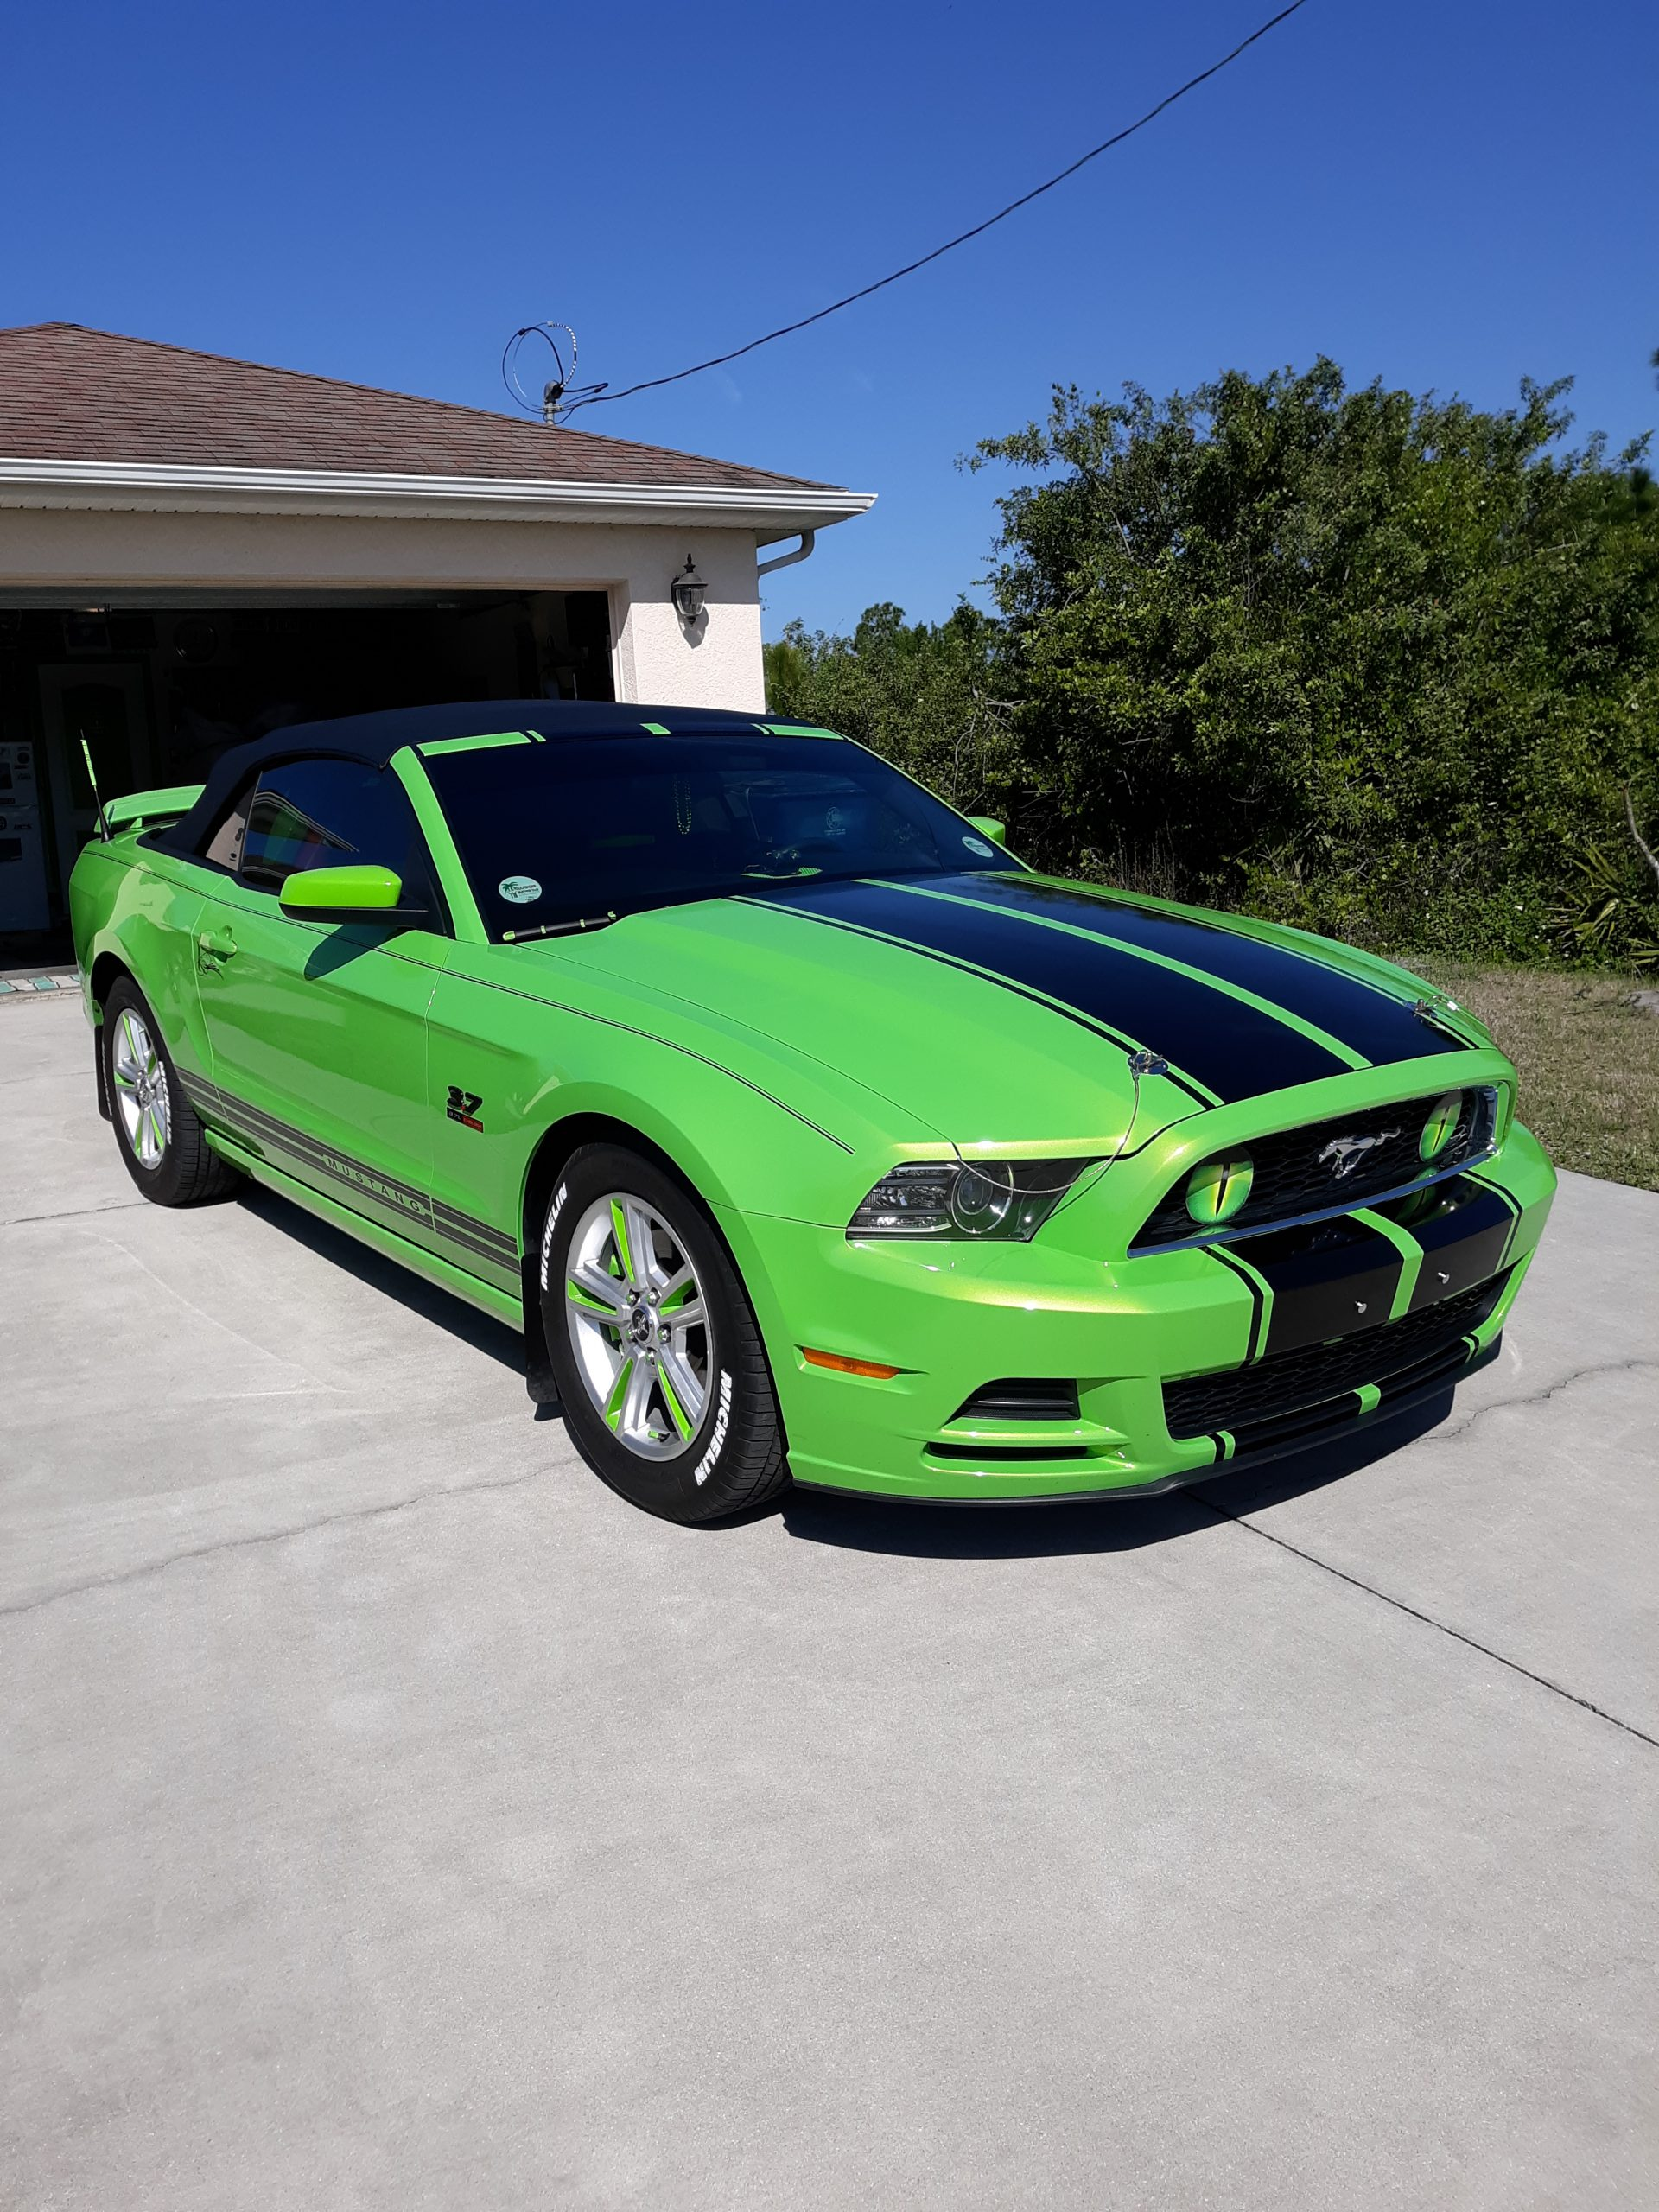 2013 GHIG Convertible Mustang in drivway